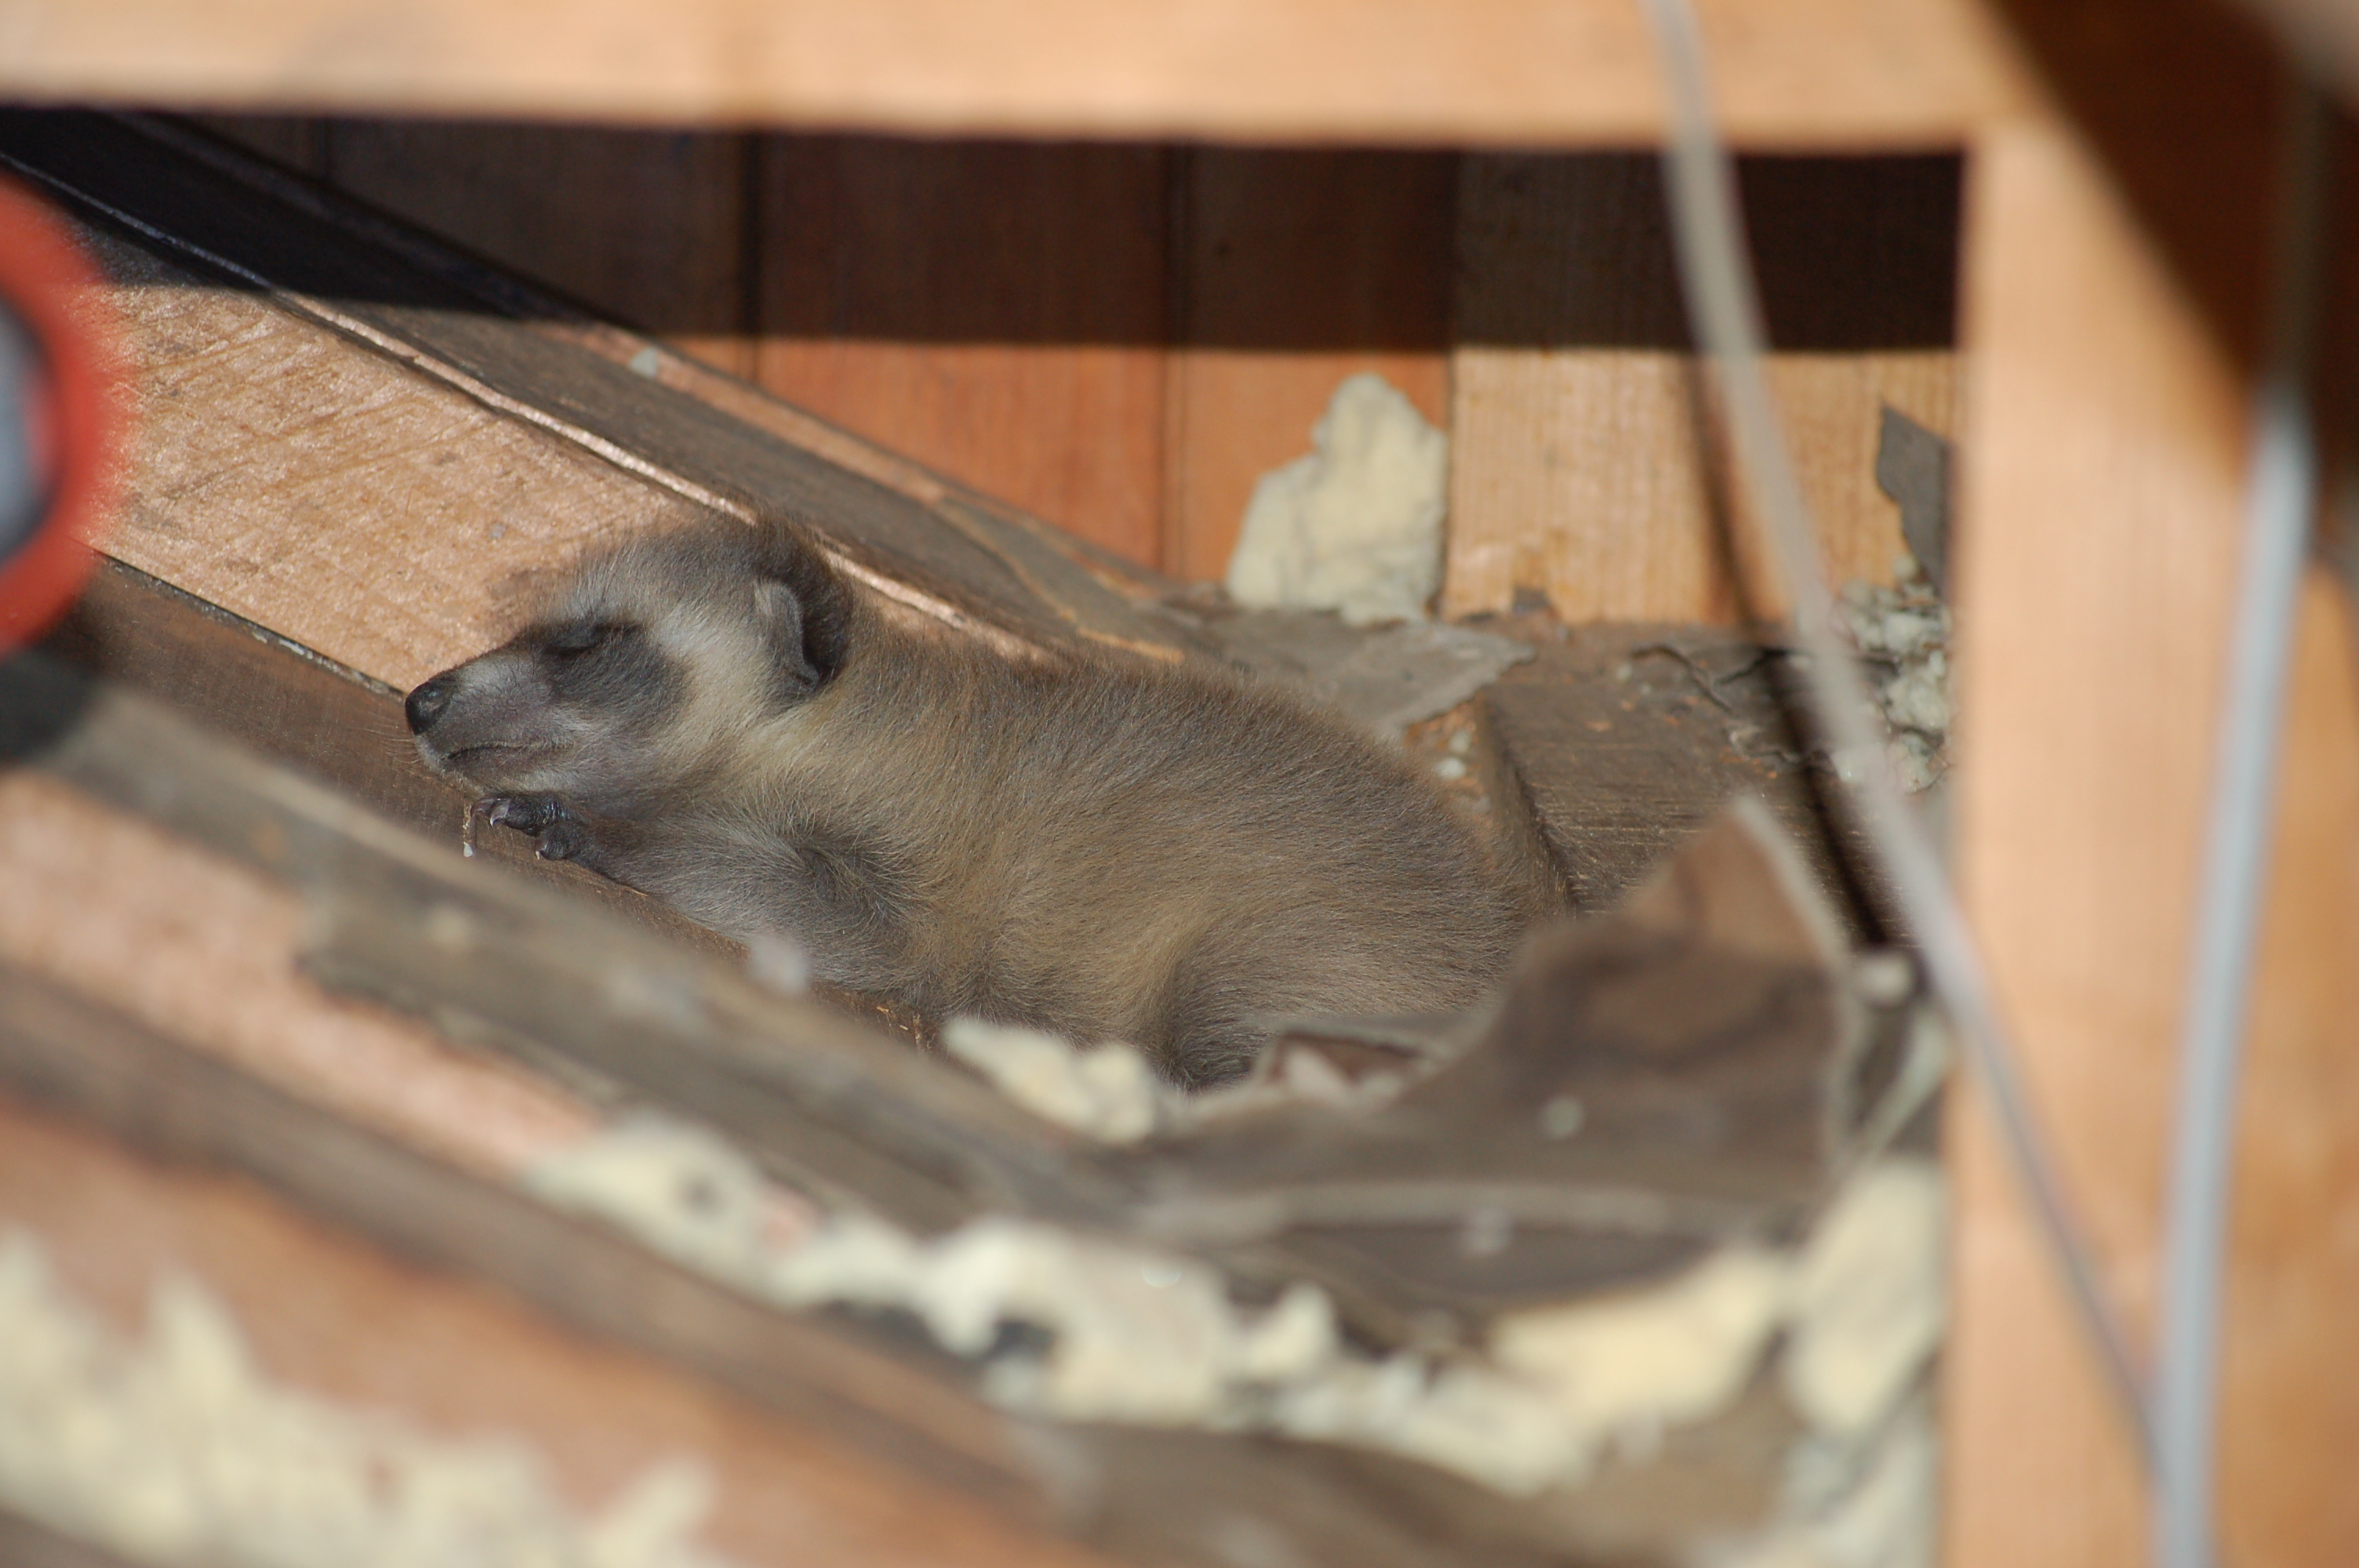 An orphaned raccoon, left alone in a crawlspace